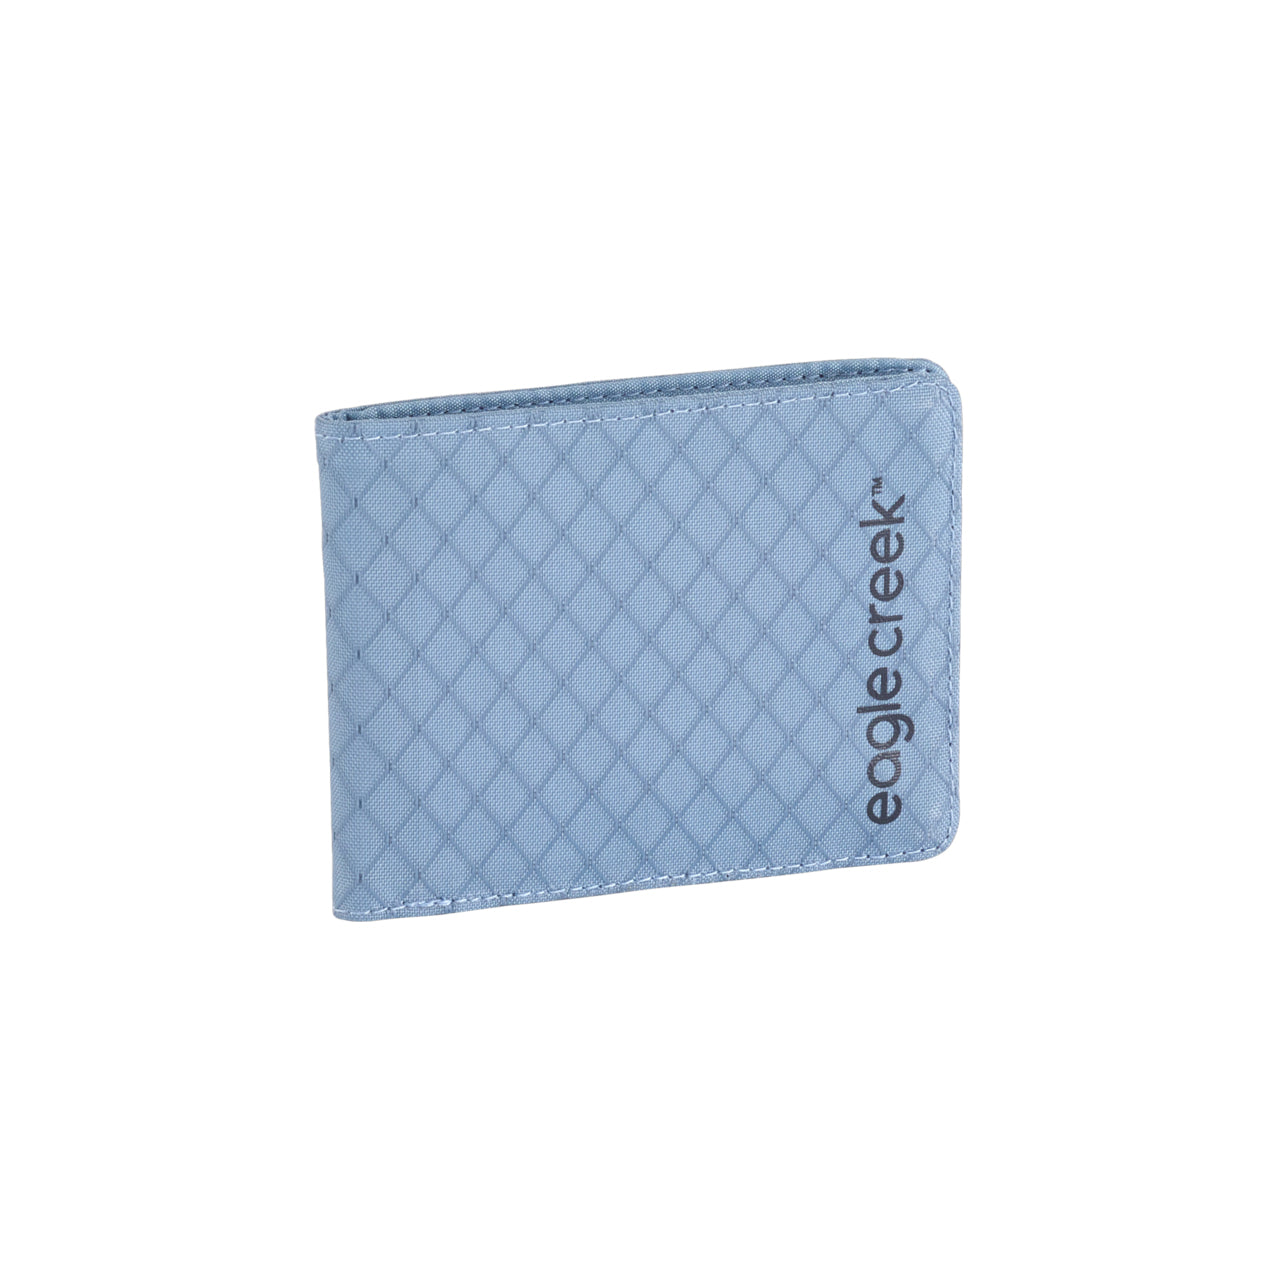 Unisex Eagle Creek RFID Bi-Fold Wallet in Arctic Blue from the front